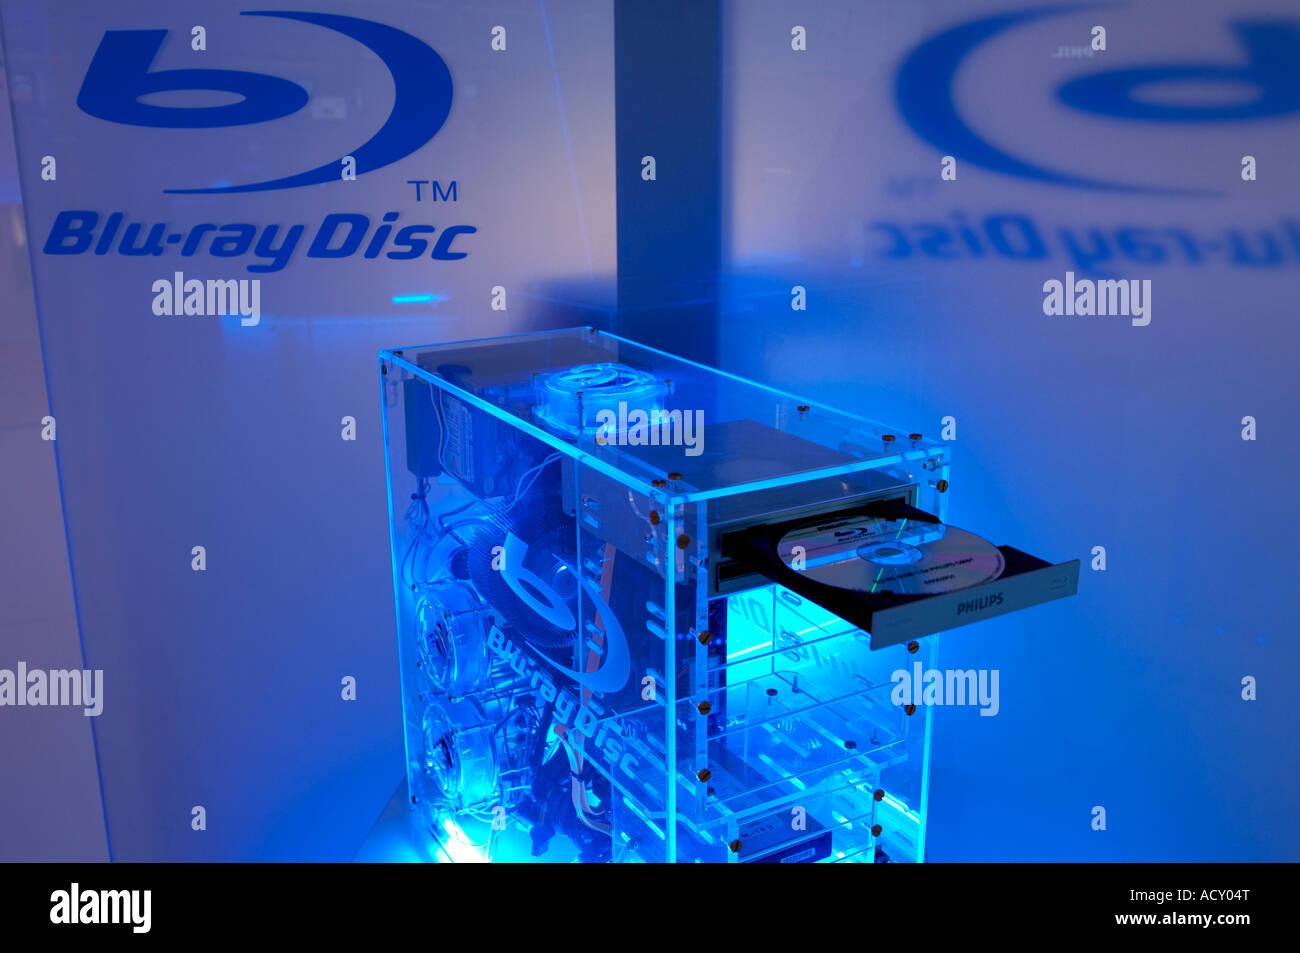 Internationals Radio And Television Exhibition 2006 - computer with Blu-ray Disc, Berlin, Germany - Stock Image